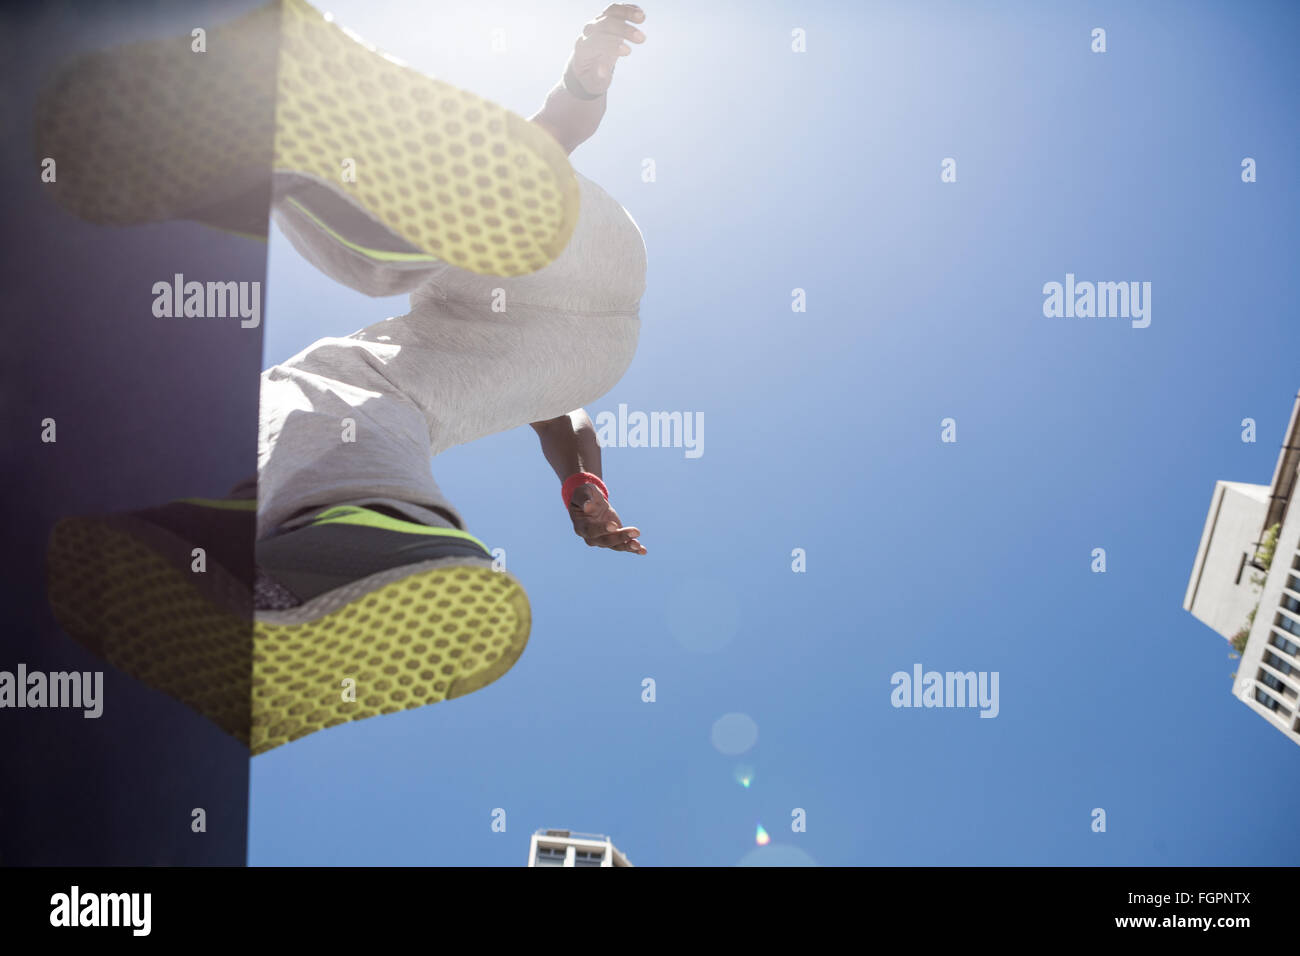 Athletic man about to do a back flip - Stock Image